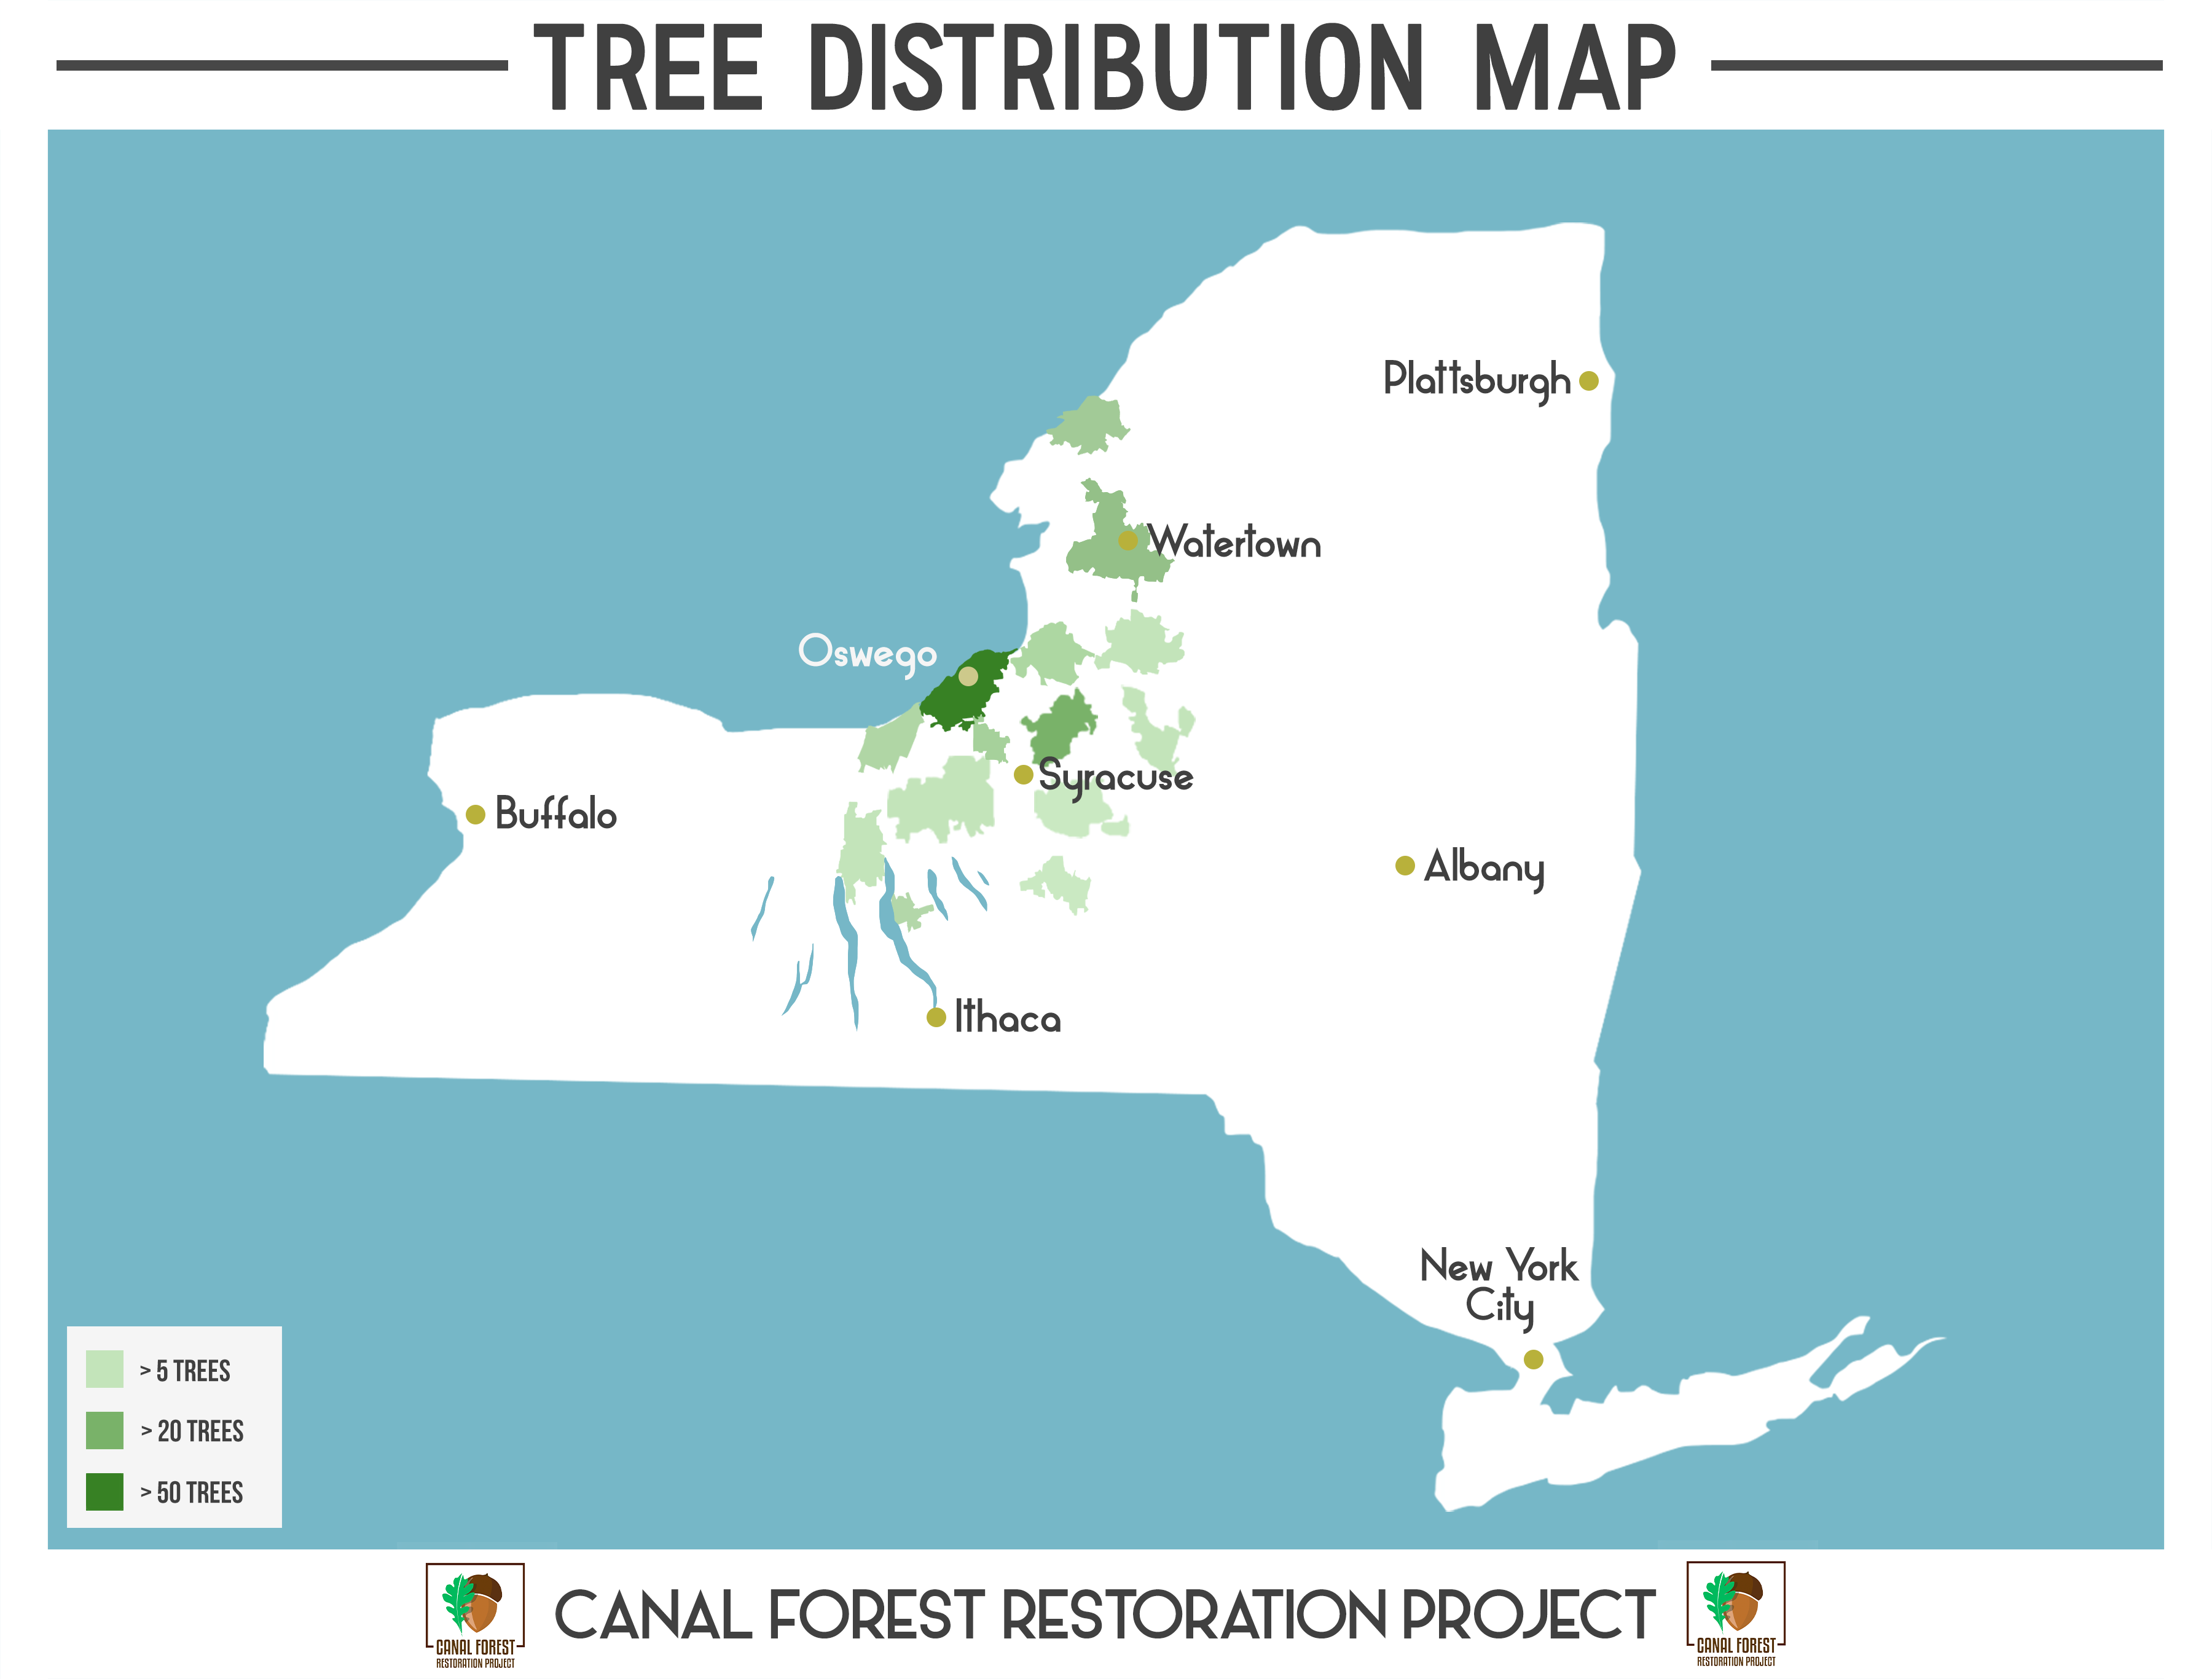 Map of New York State, showing zip codes colored by number of trees planted. Most in central and north-western New York.